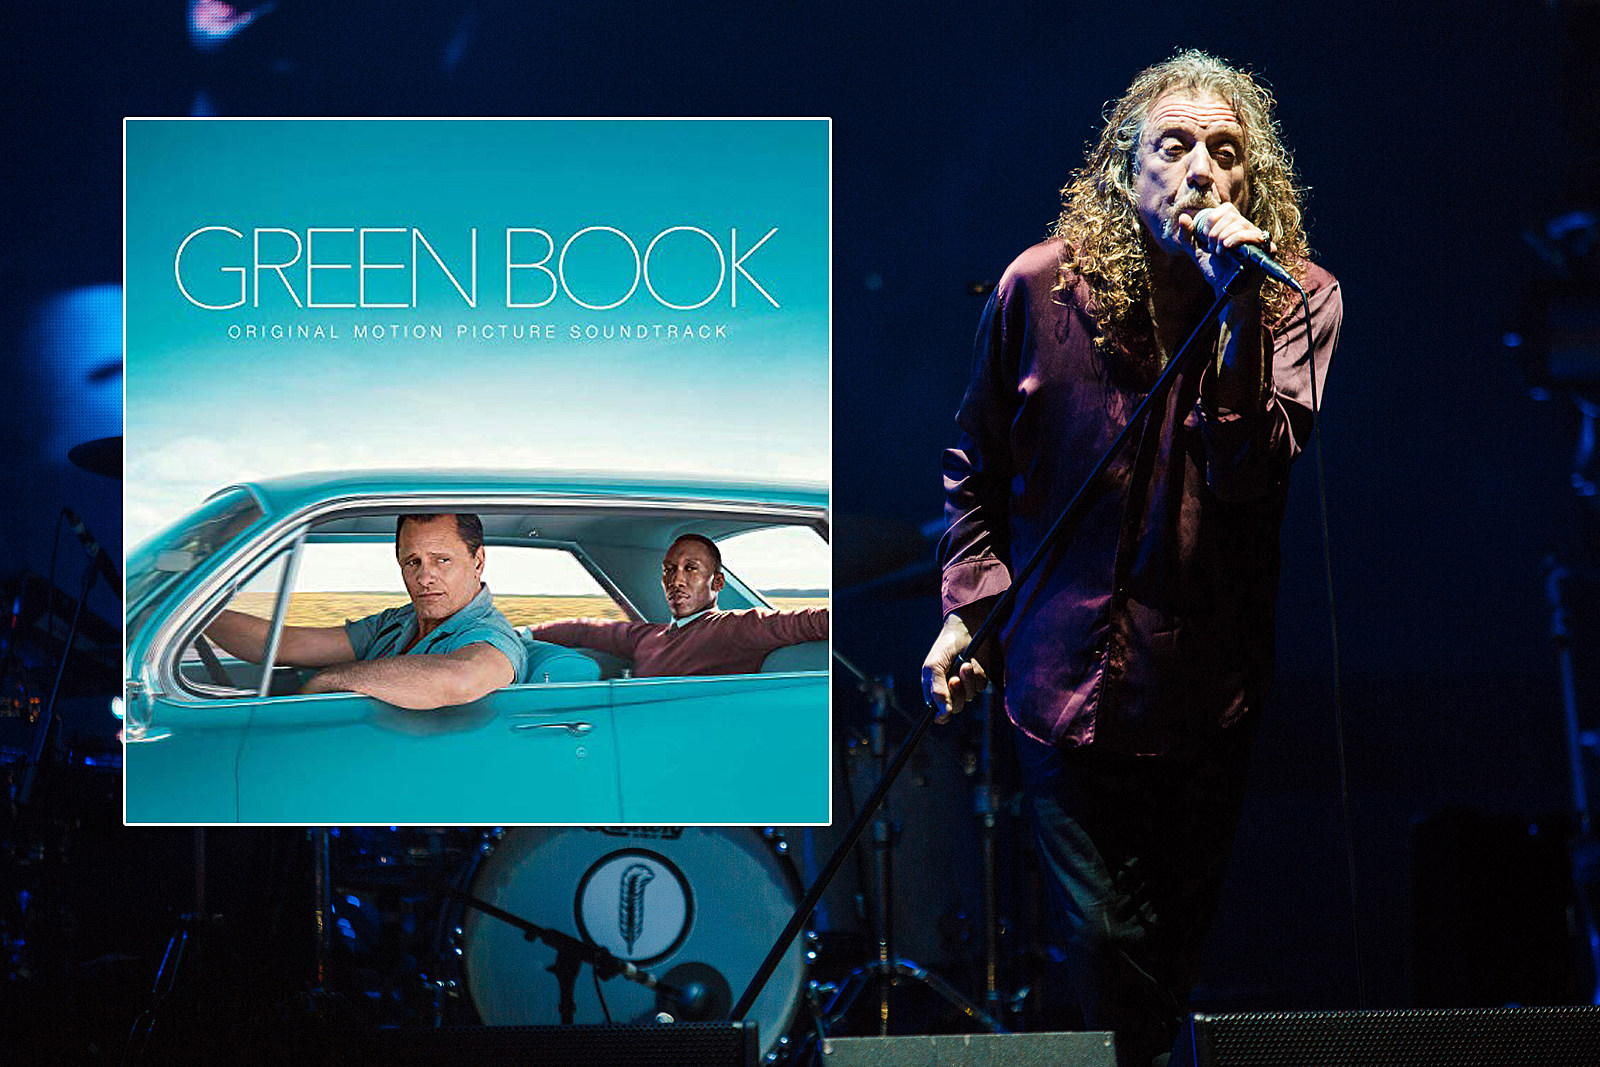 How Robert Plant Helped Curate the 'Green Book' Soundtrack